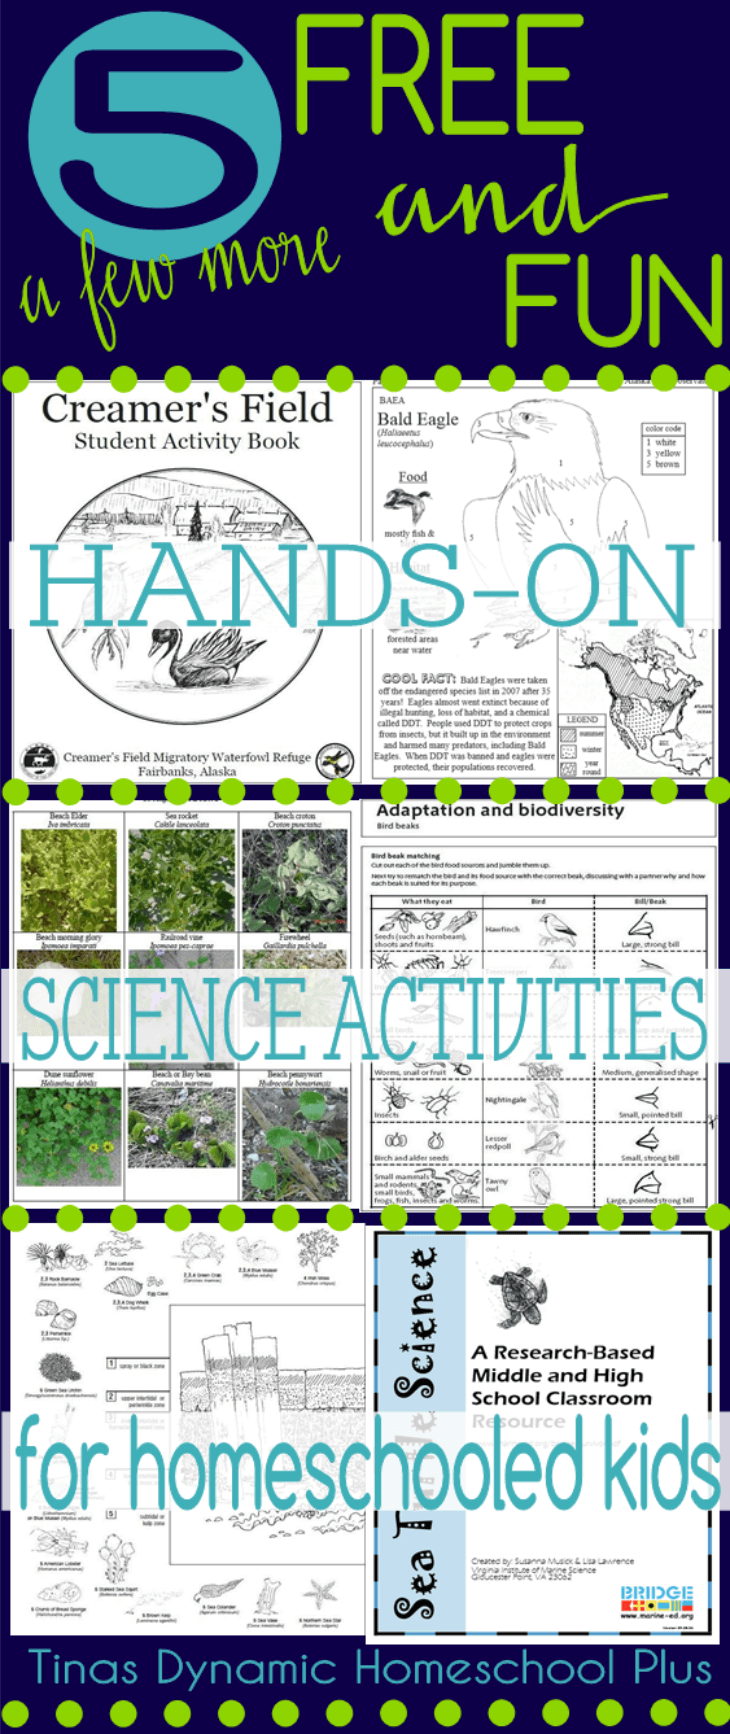 5 FUN and FREE Hands-on Science Activities for Homeschooled Kids @ Tina's Dynamic Homeschool Plus